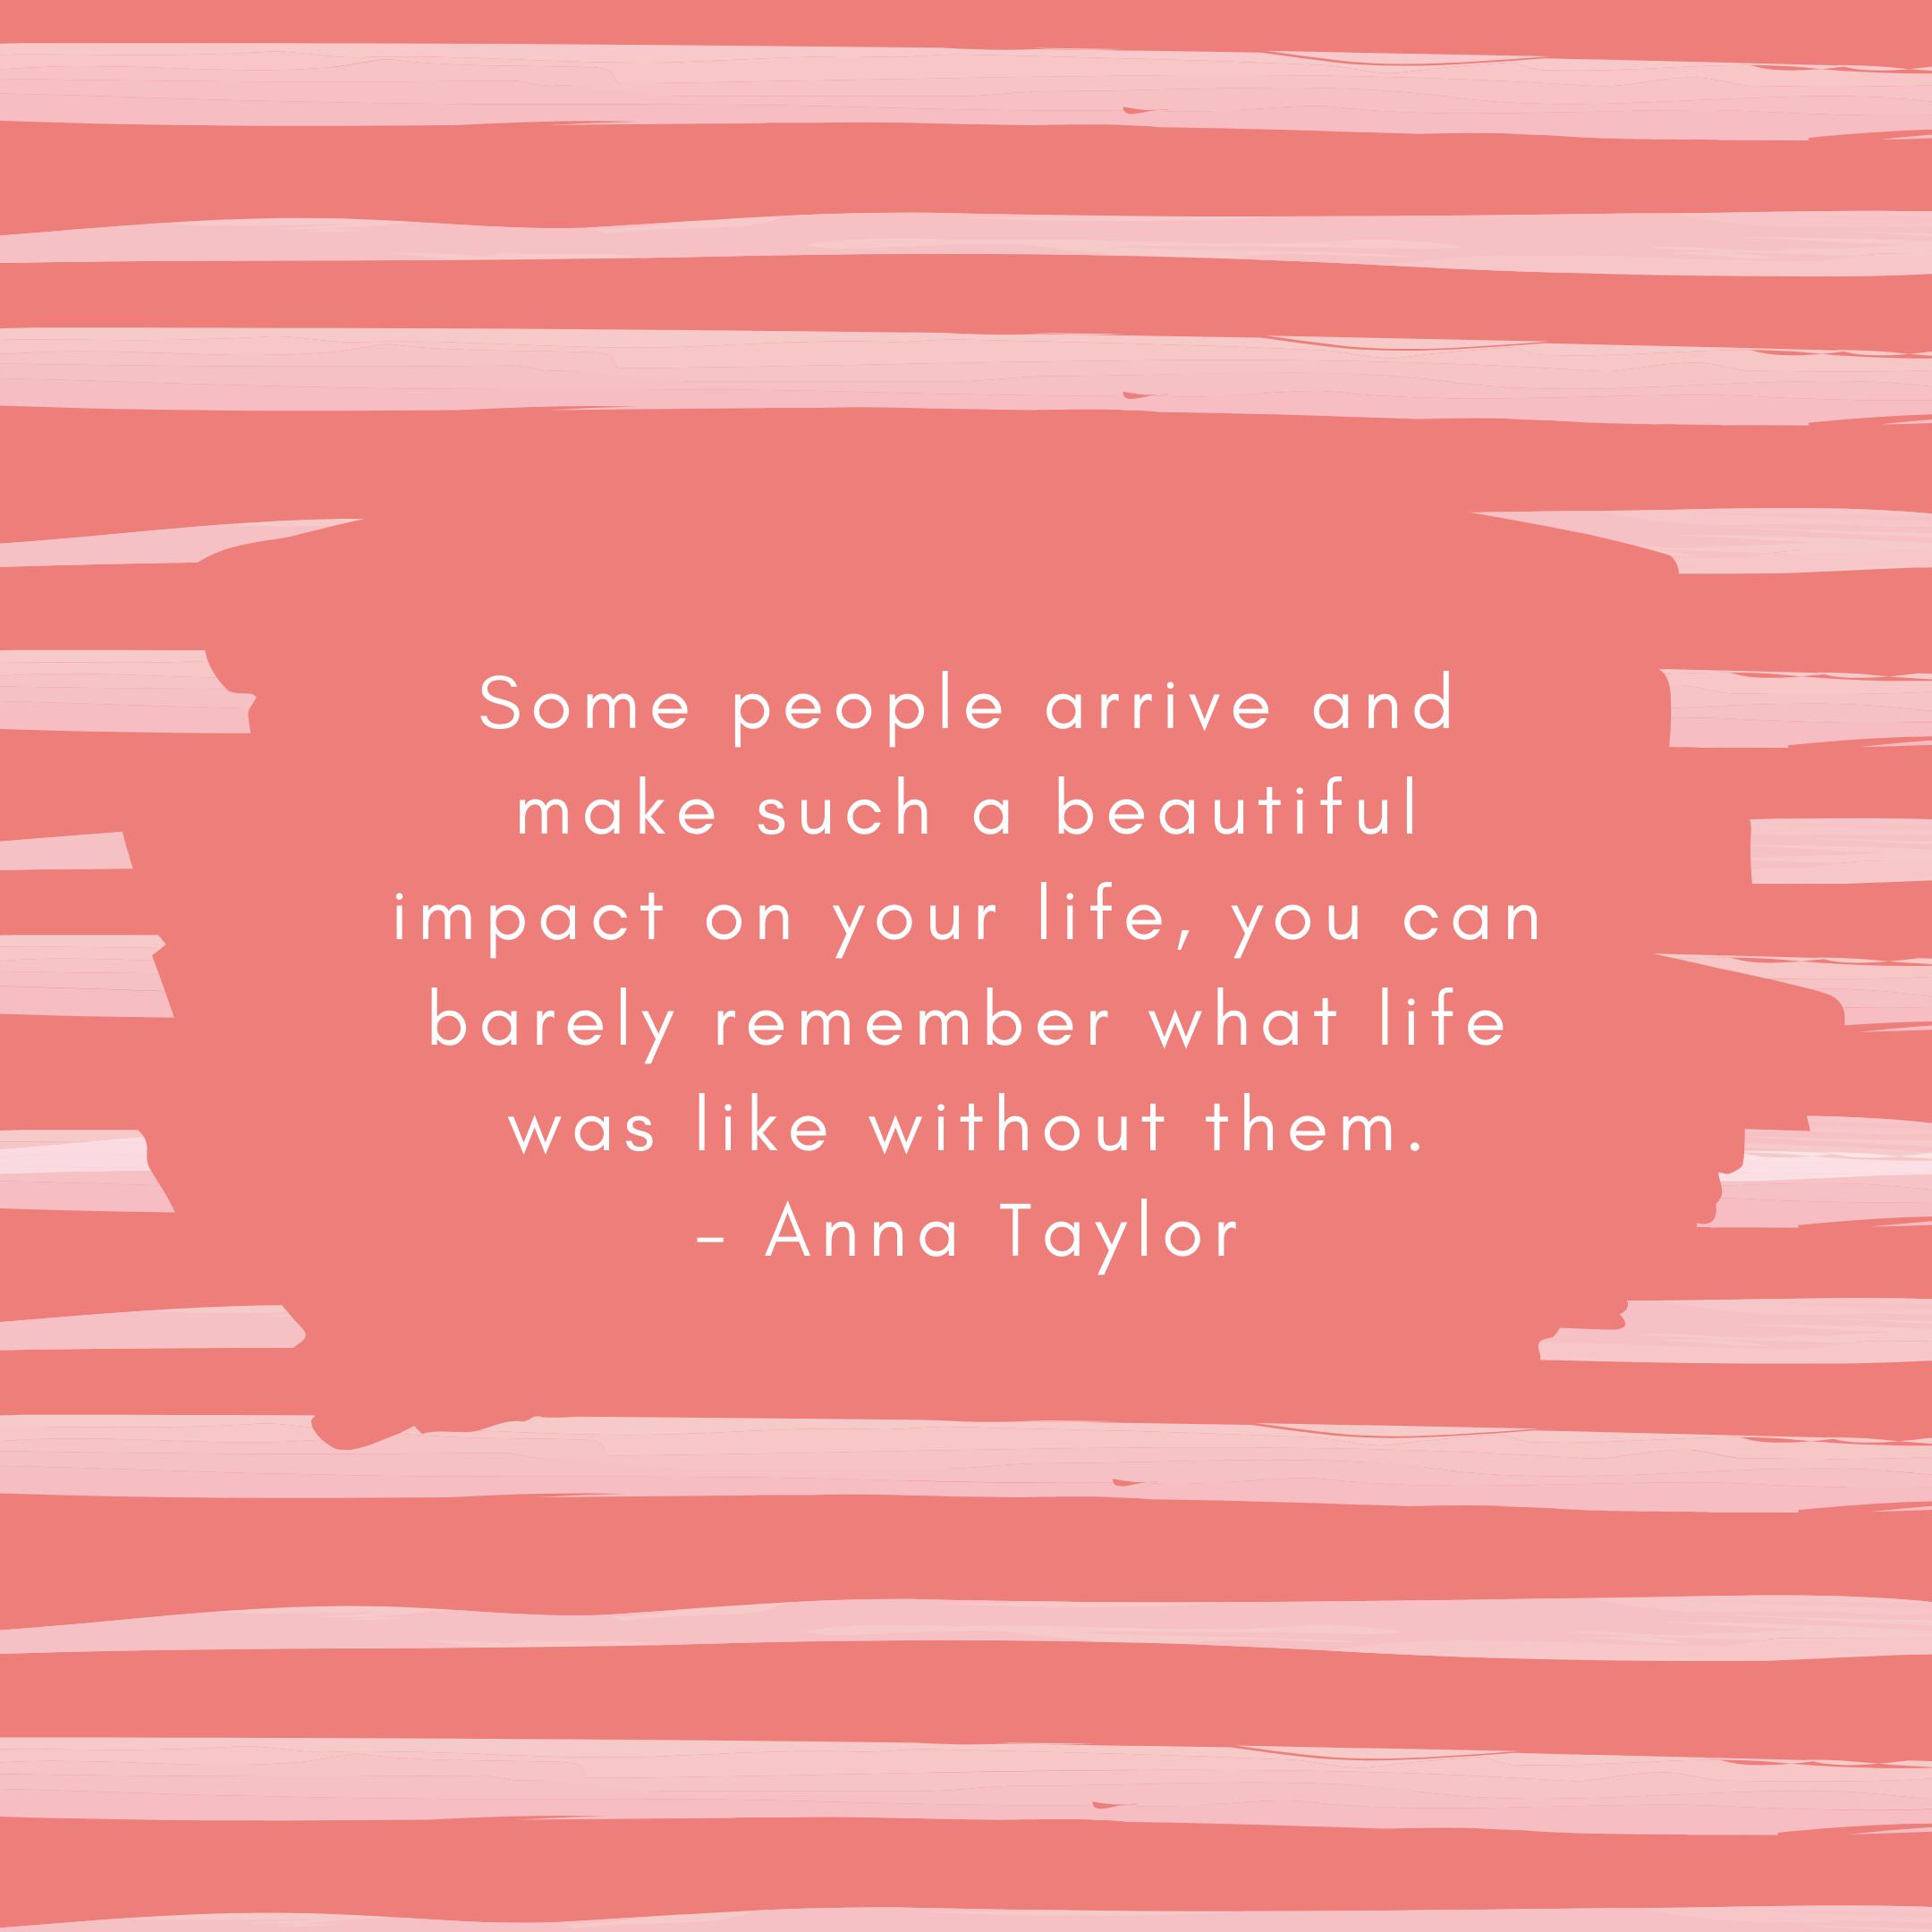 Some people arrive and make such a beautiful impact on your life, you can barely remember what life was like without them. – Anna Taylor